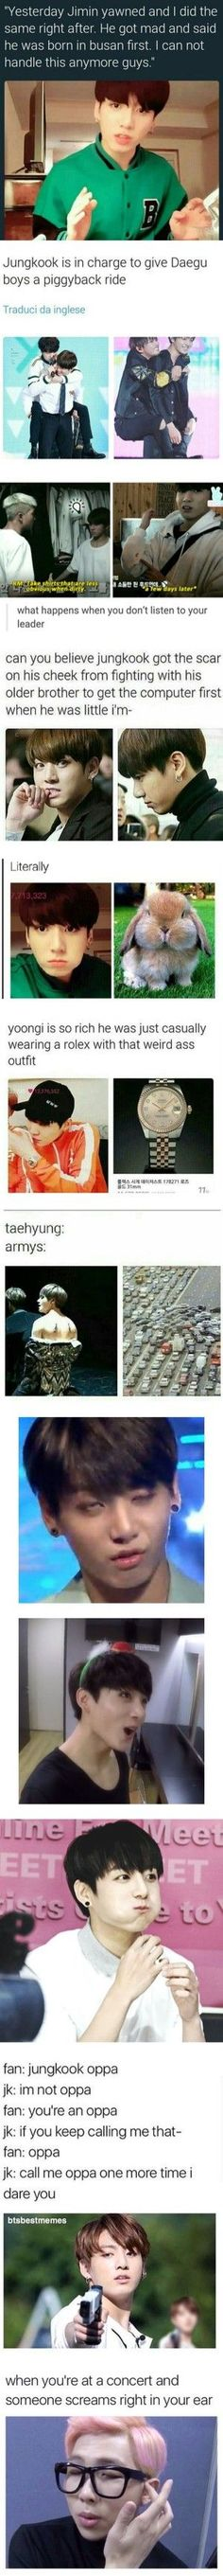 memes by jungkookshi on Polyvore featuring bts, people, women's fashion, home, home decor, meme, holiday decorations, christmas holiday decor, christmas home decor and christmas holiday decorations #ad